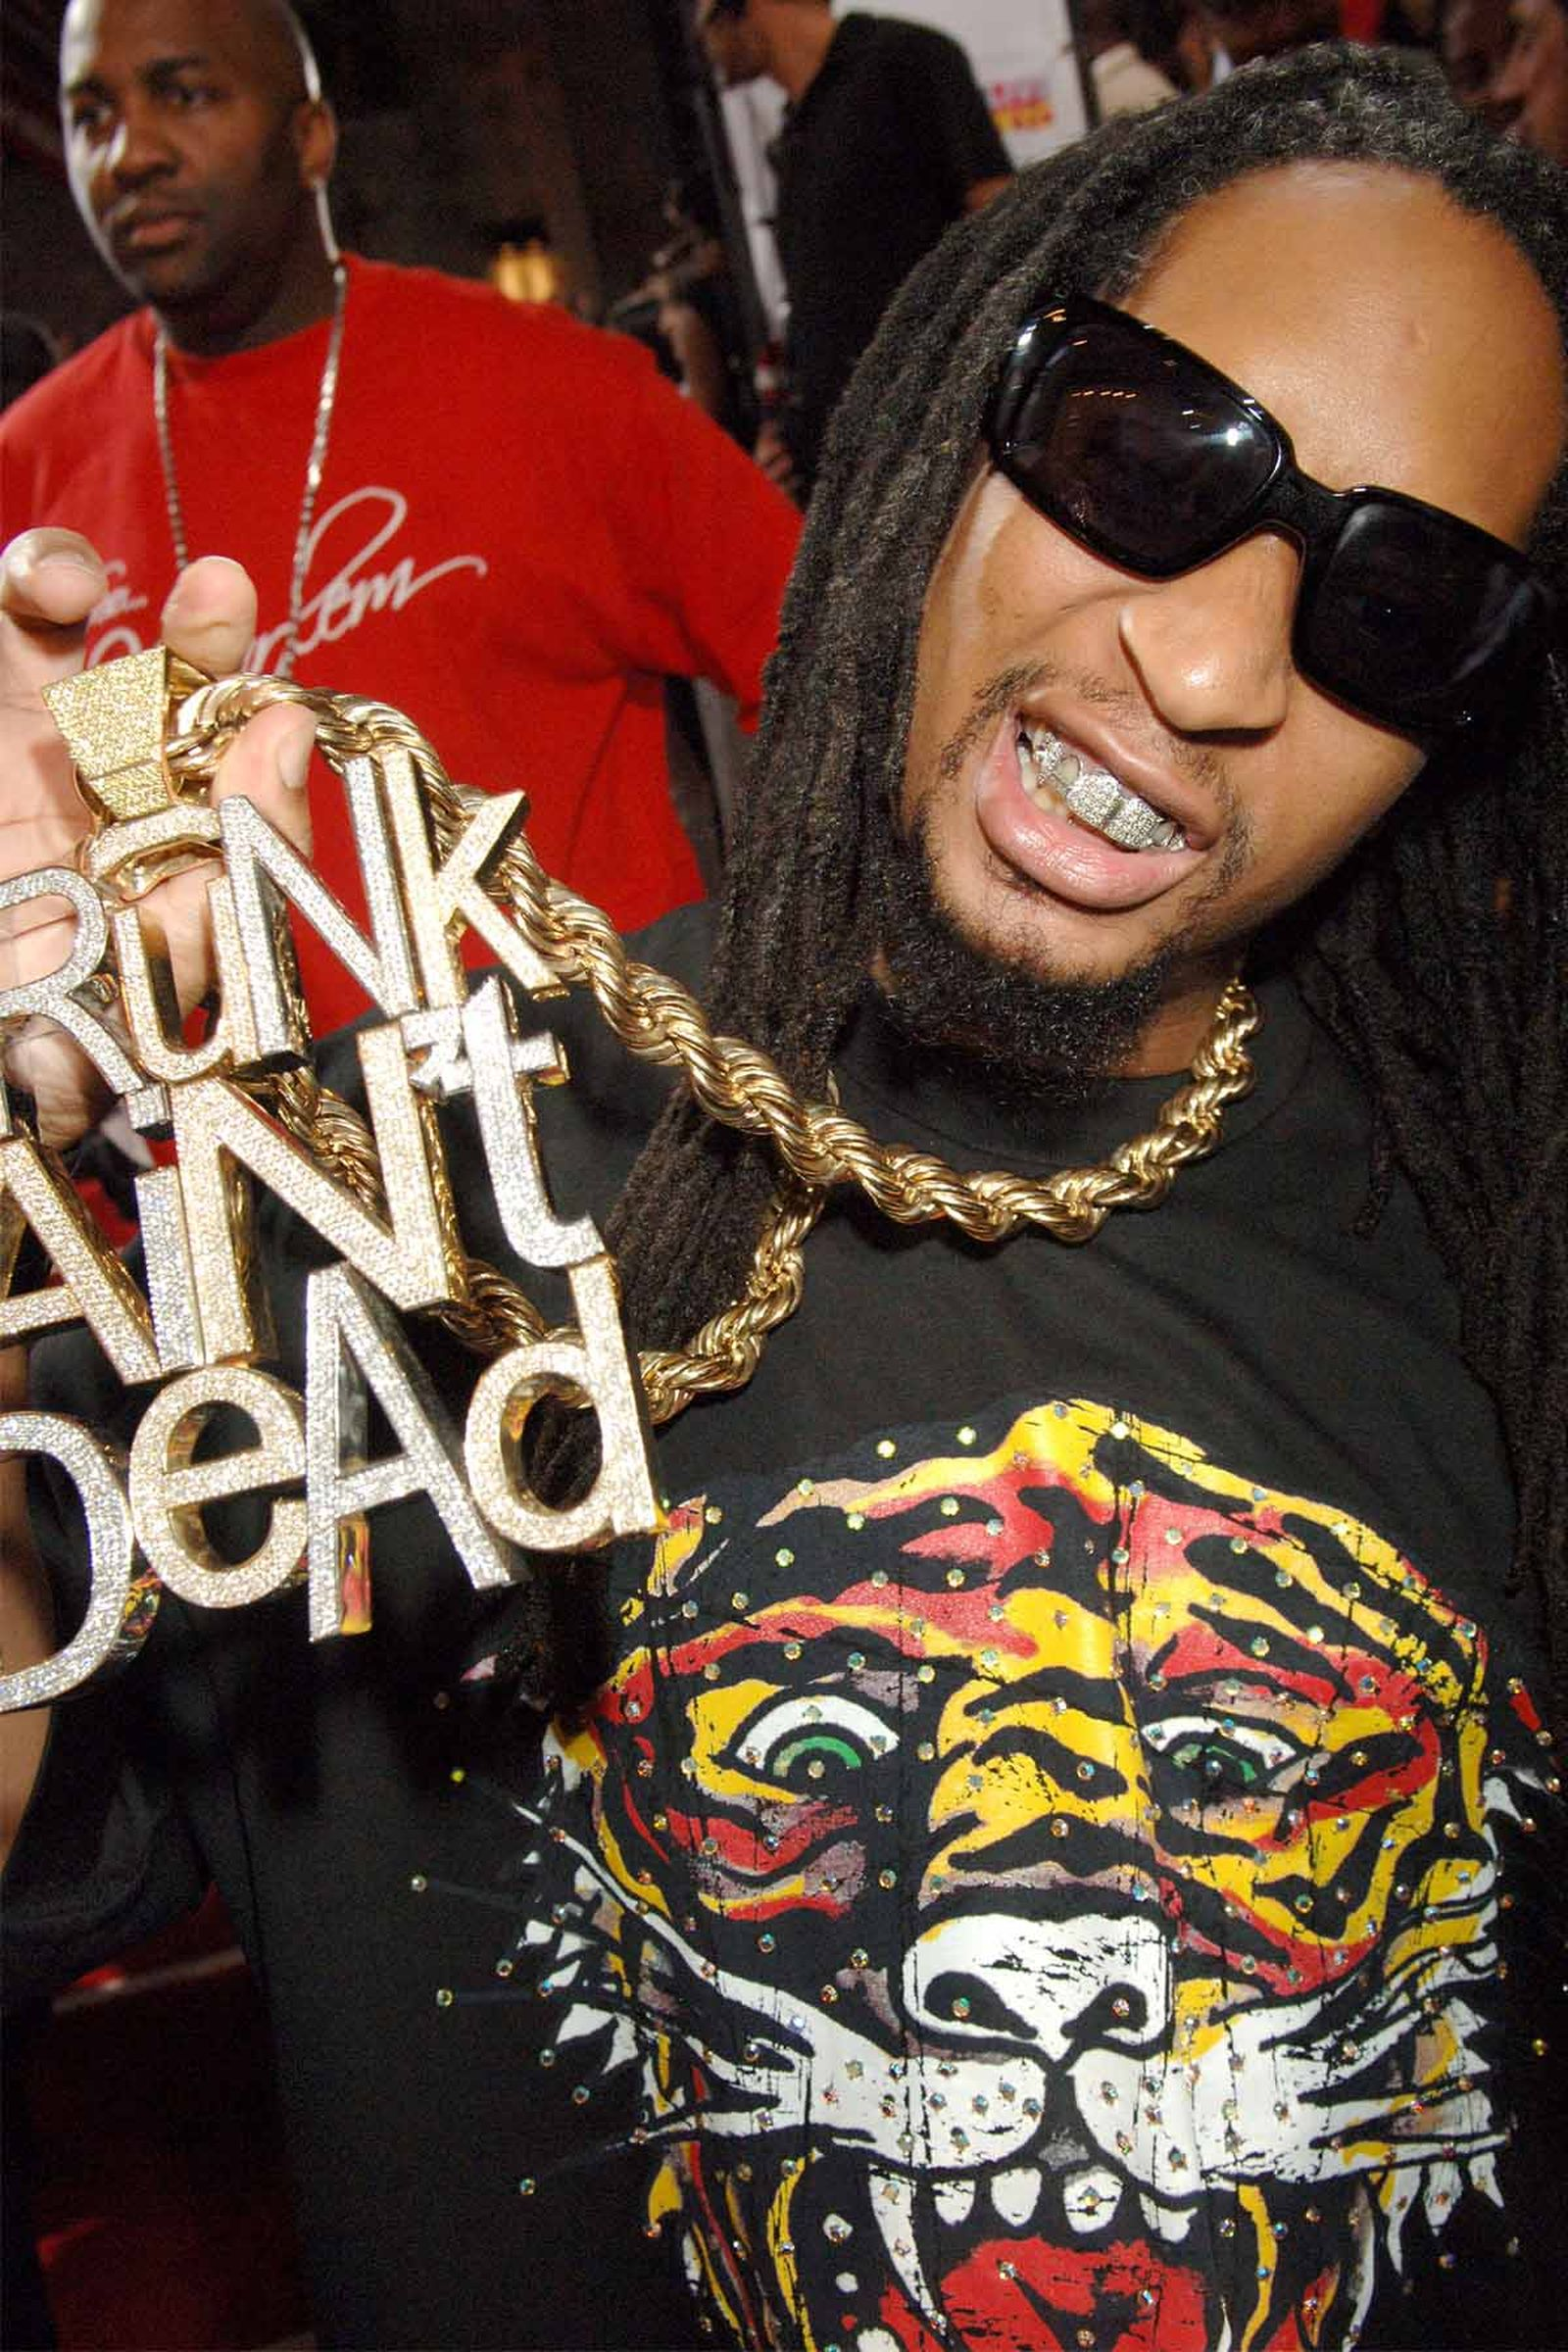 Lil Jon during the 2006 MTV Video Music Awards flaunting his iconic 'Crunk Ain't Dead' chain.